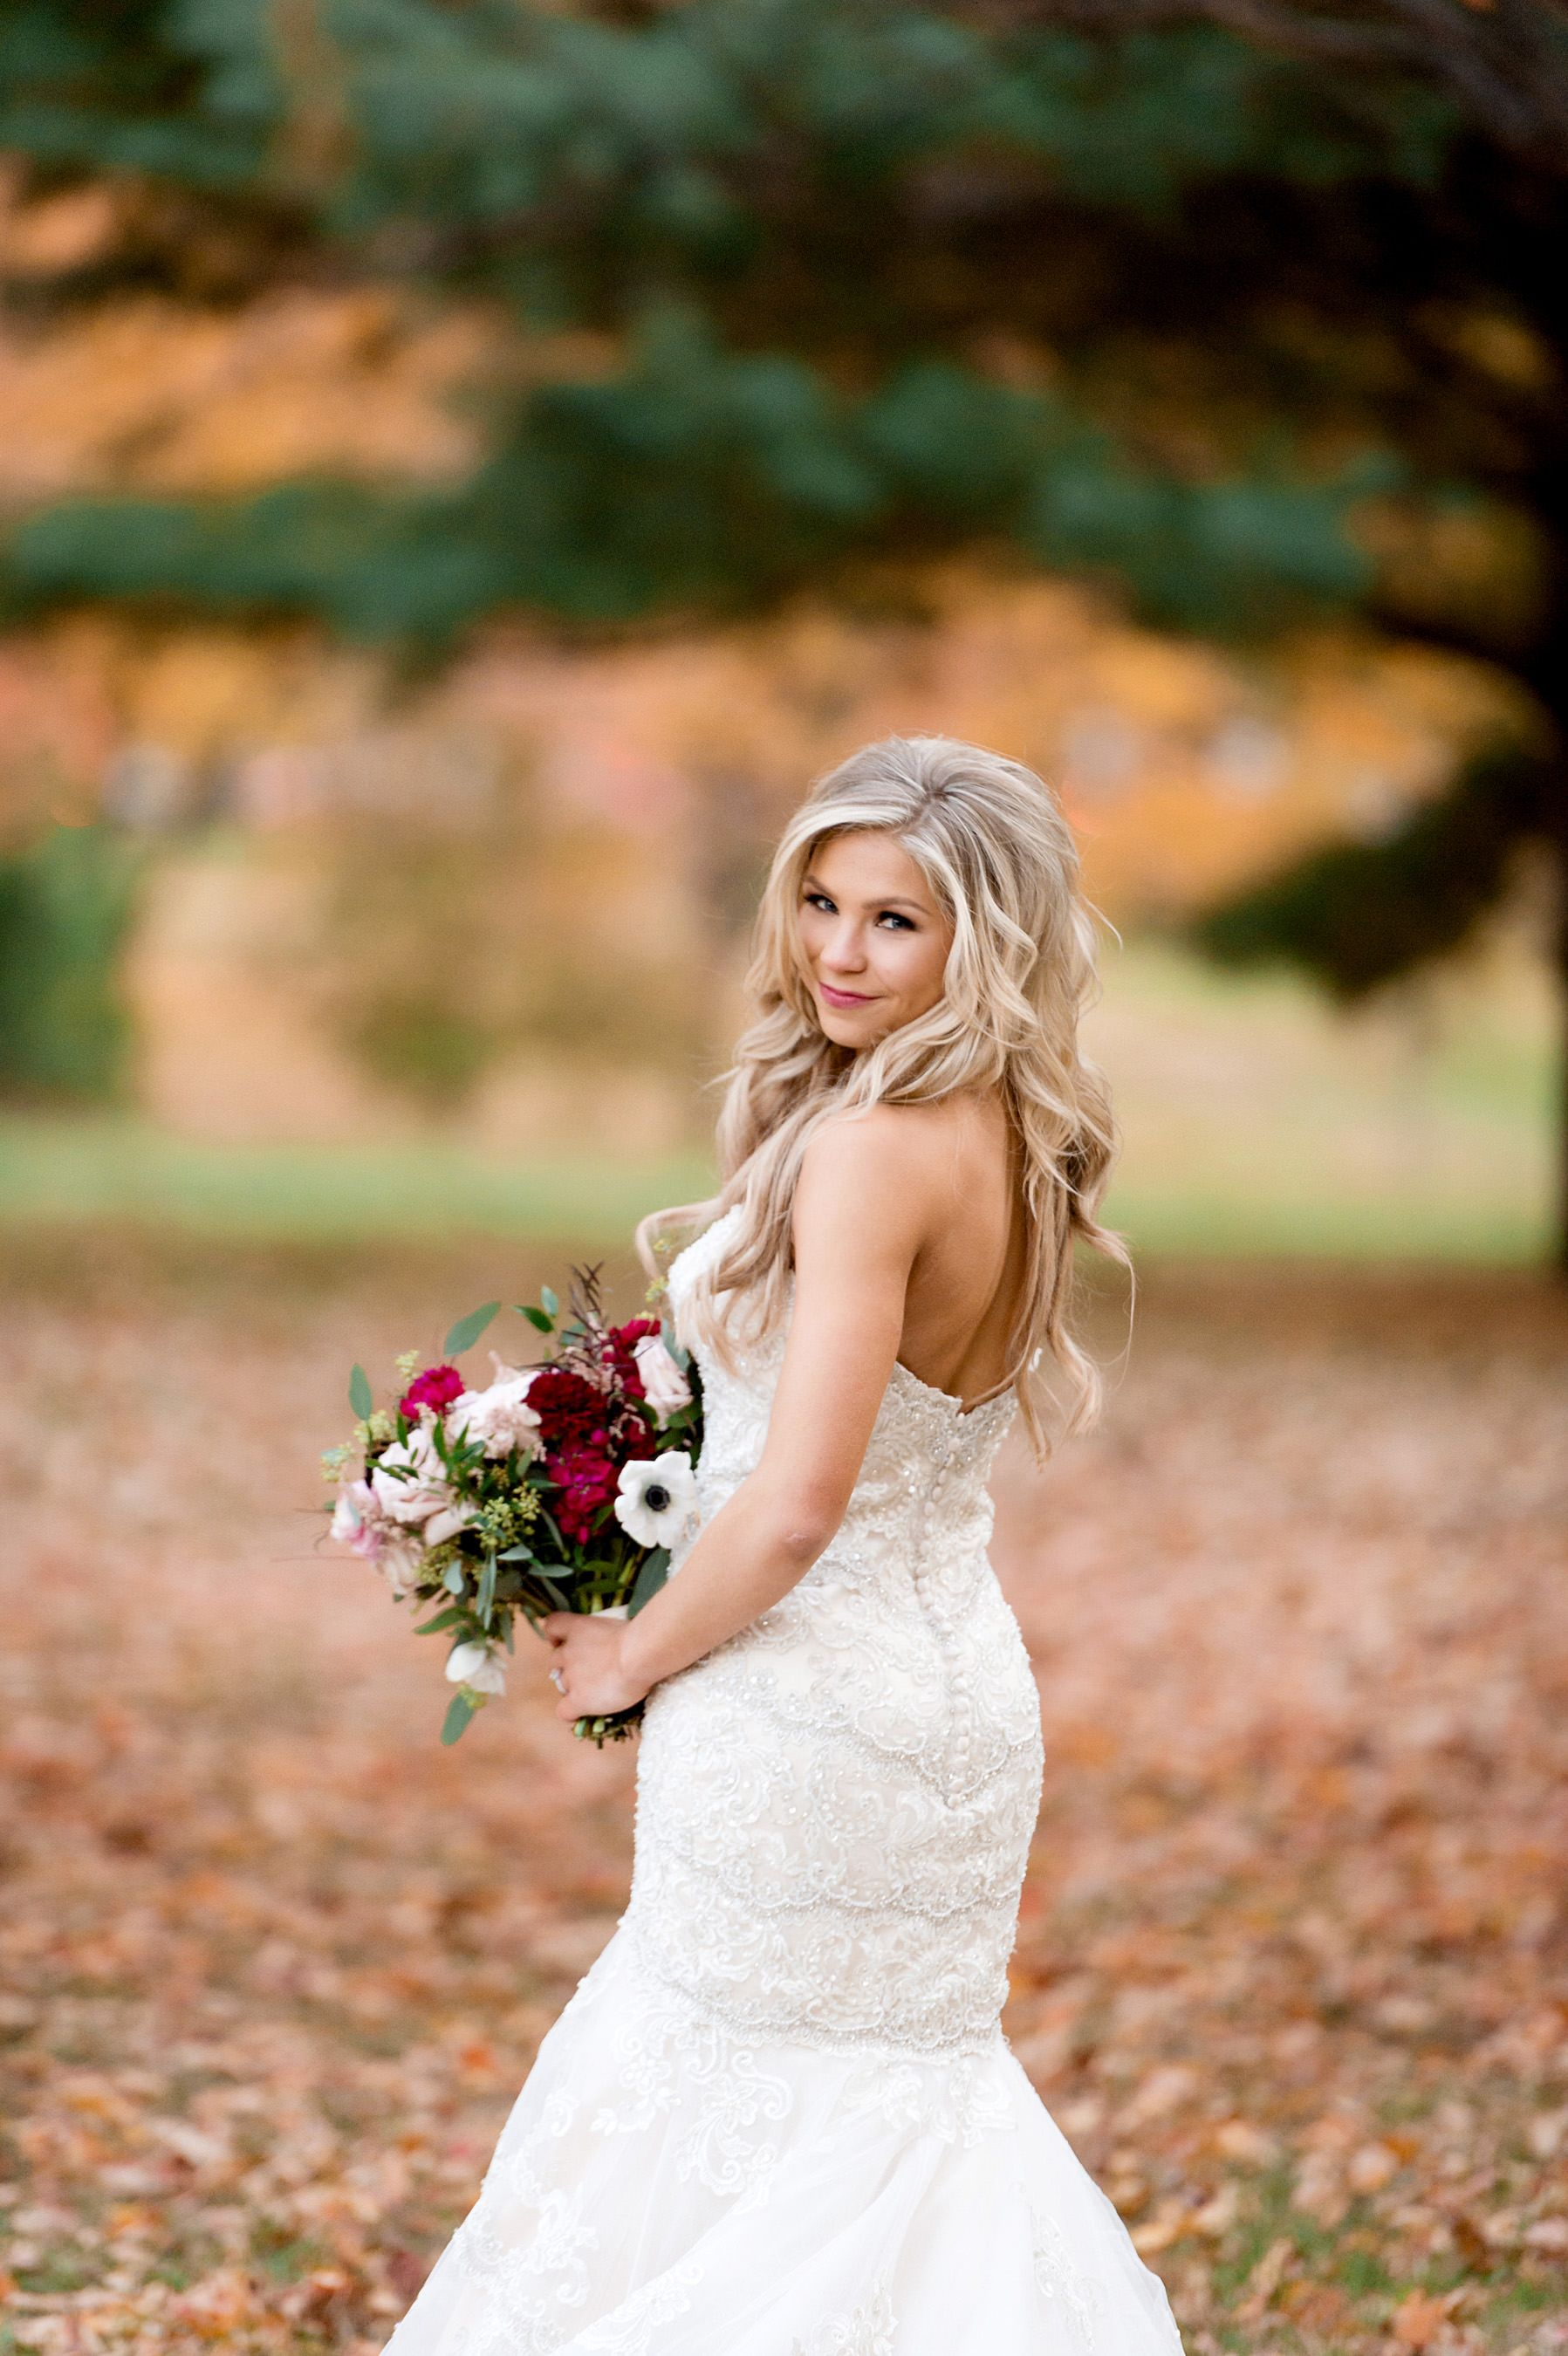 saint louis wedding photographer | fall weddings | wedding